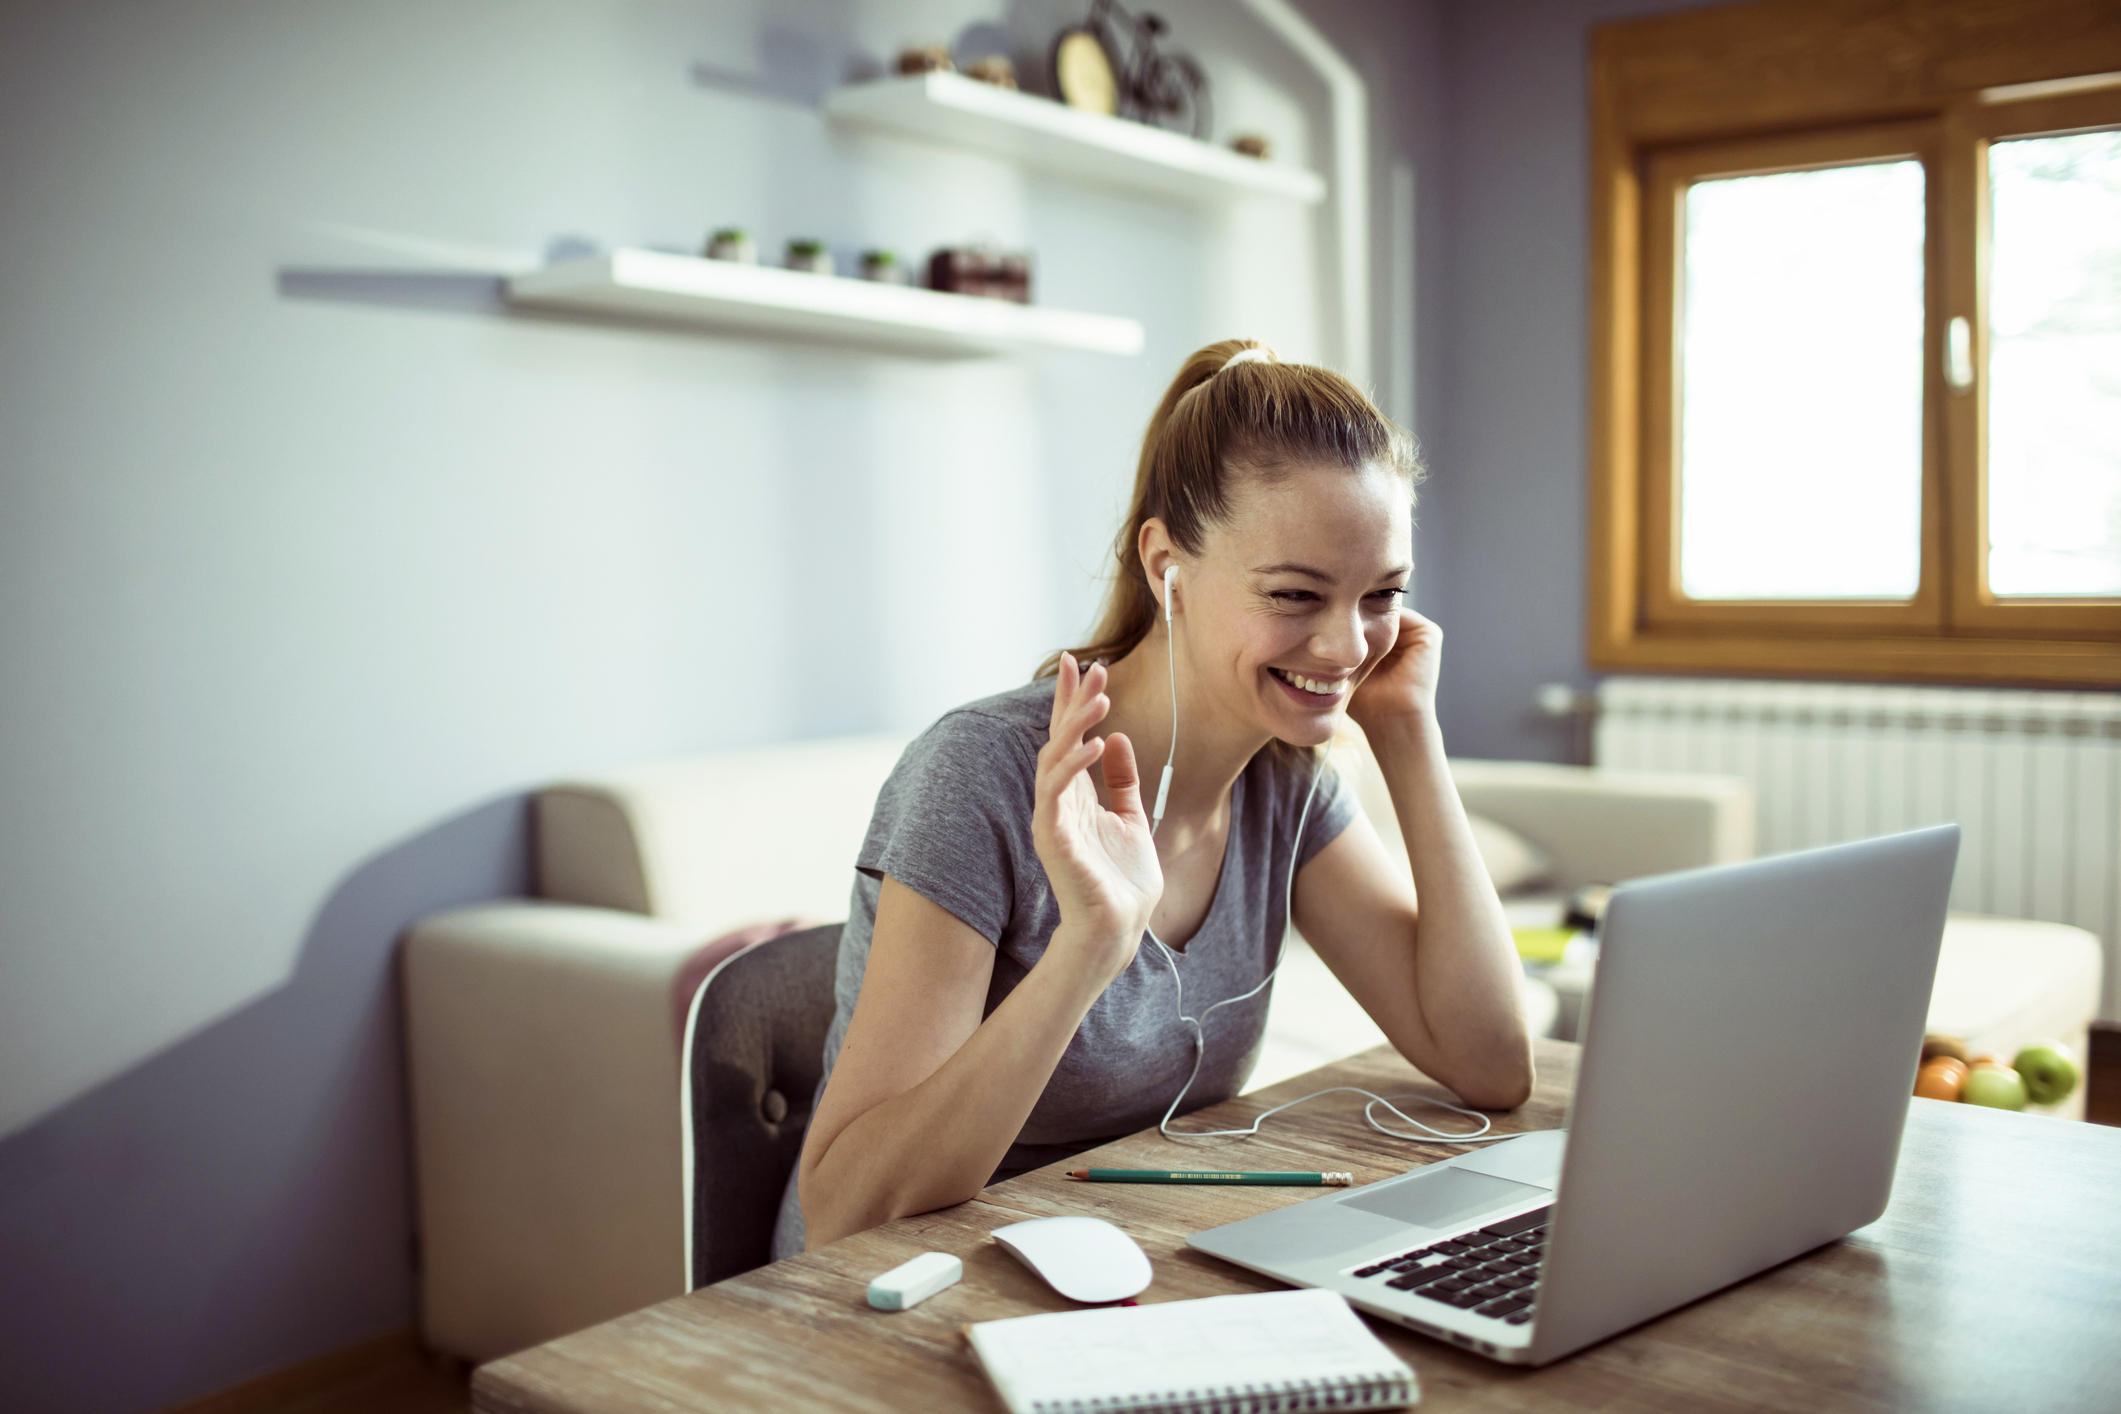 Stock_Woman-on-laptop-7.jpg